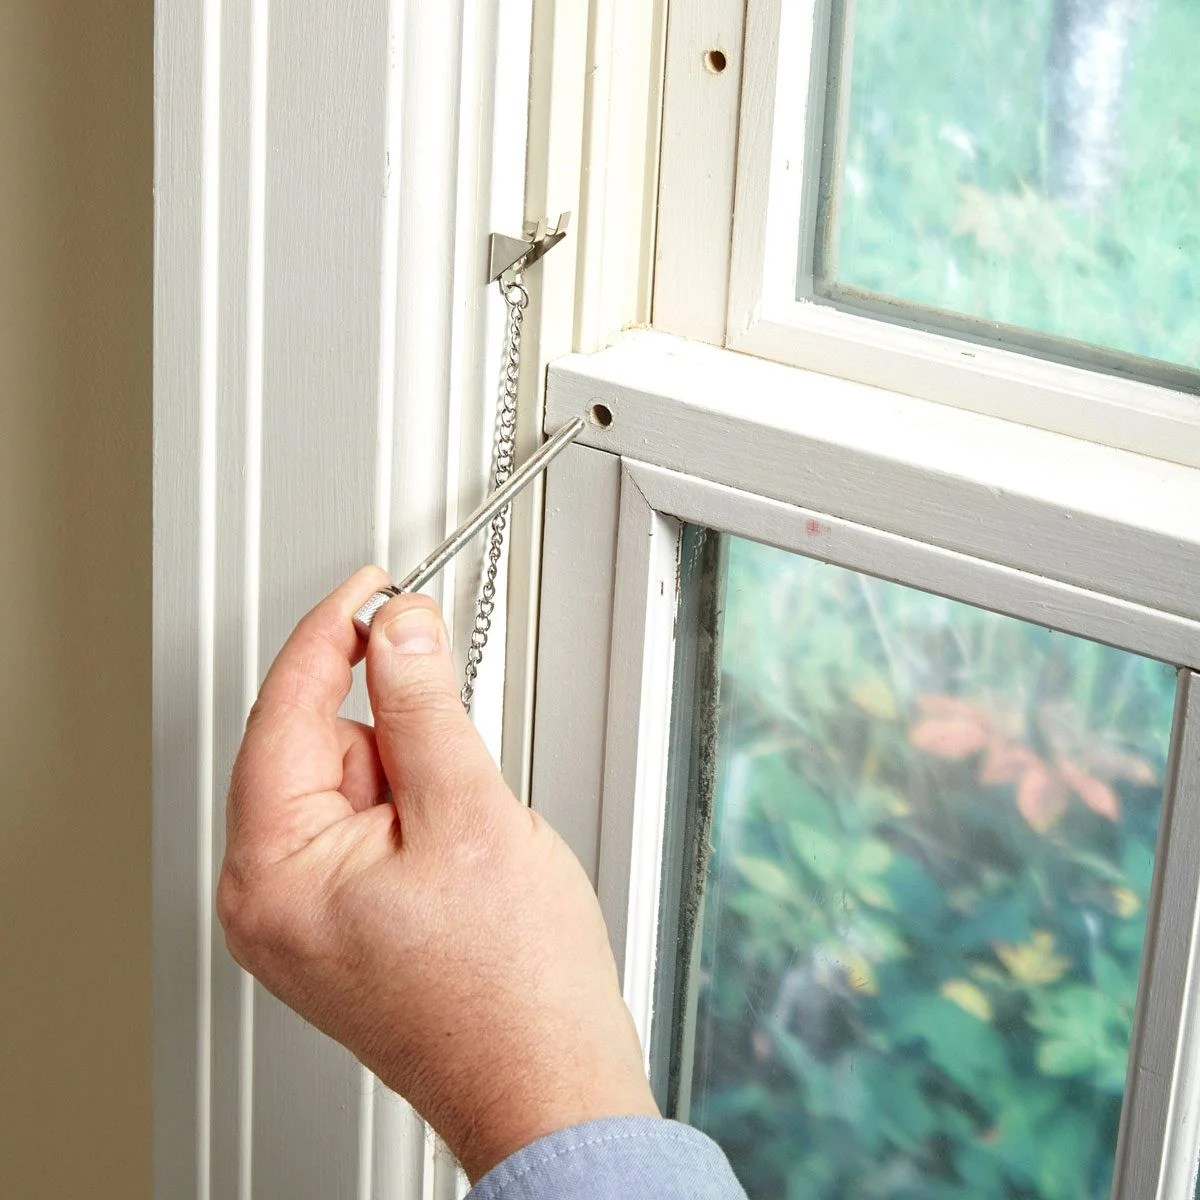 hight resolution of how to secure windows with simple window locks the latches on most double hung